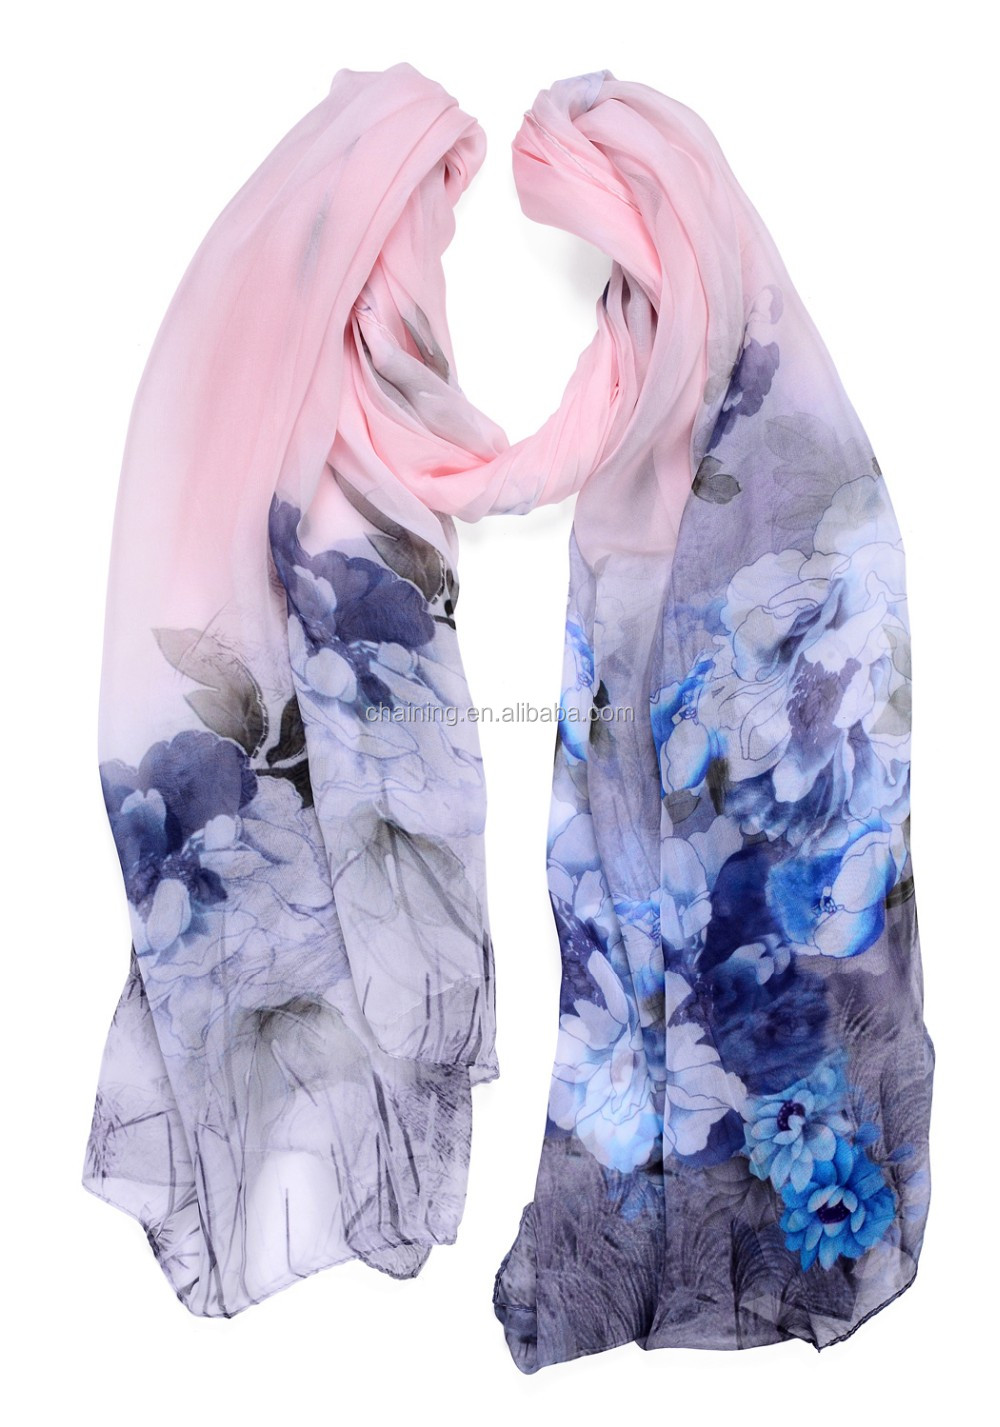 high quality custom design silk screen 100% silk chiffon Peach blossom scarf